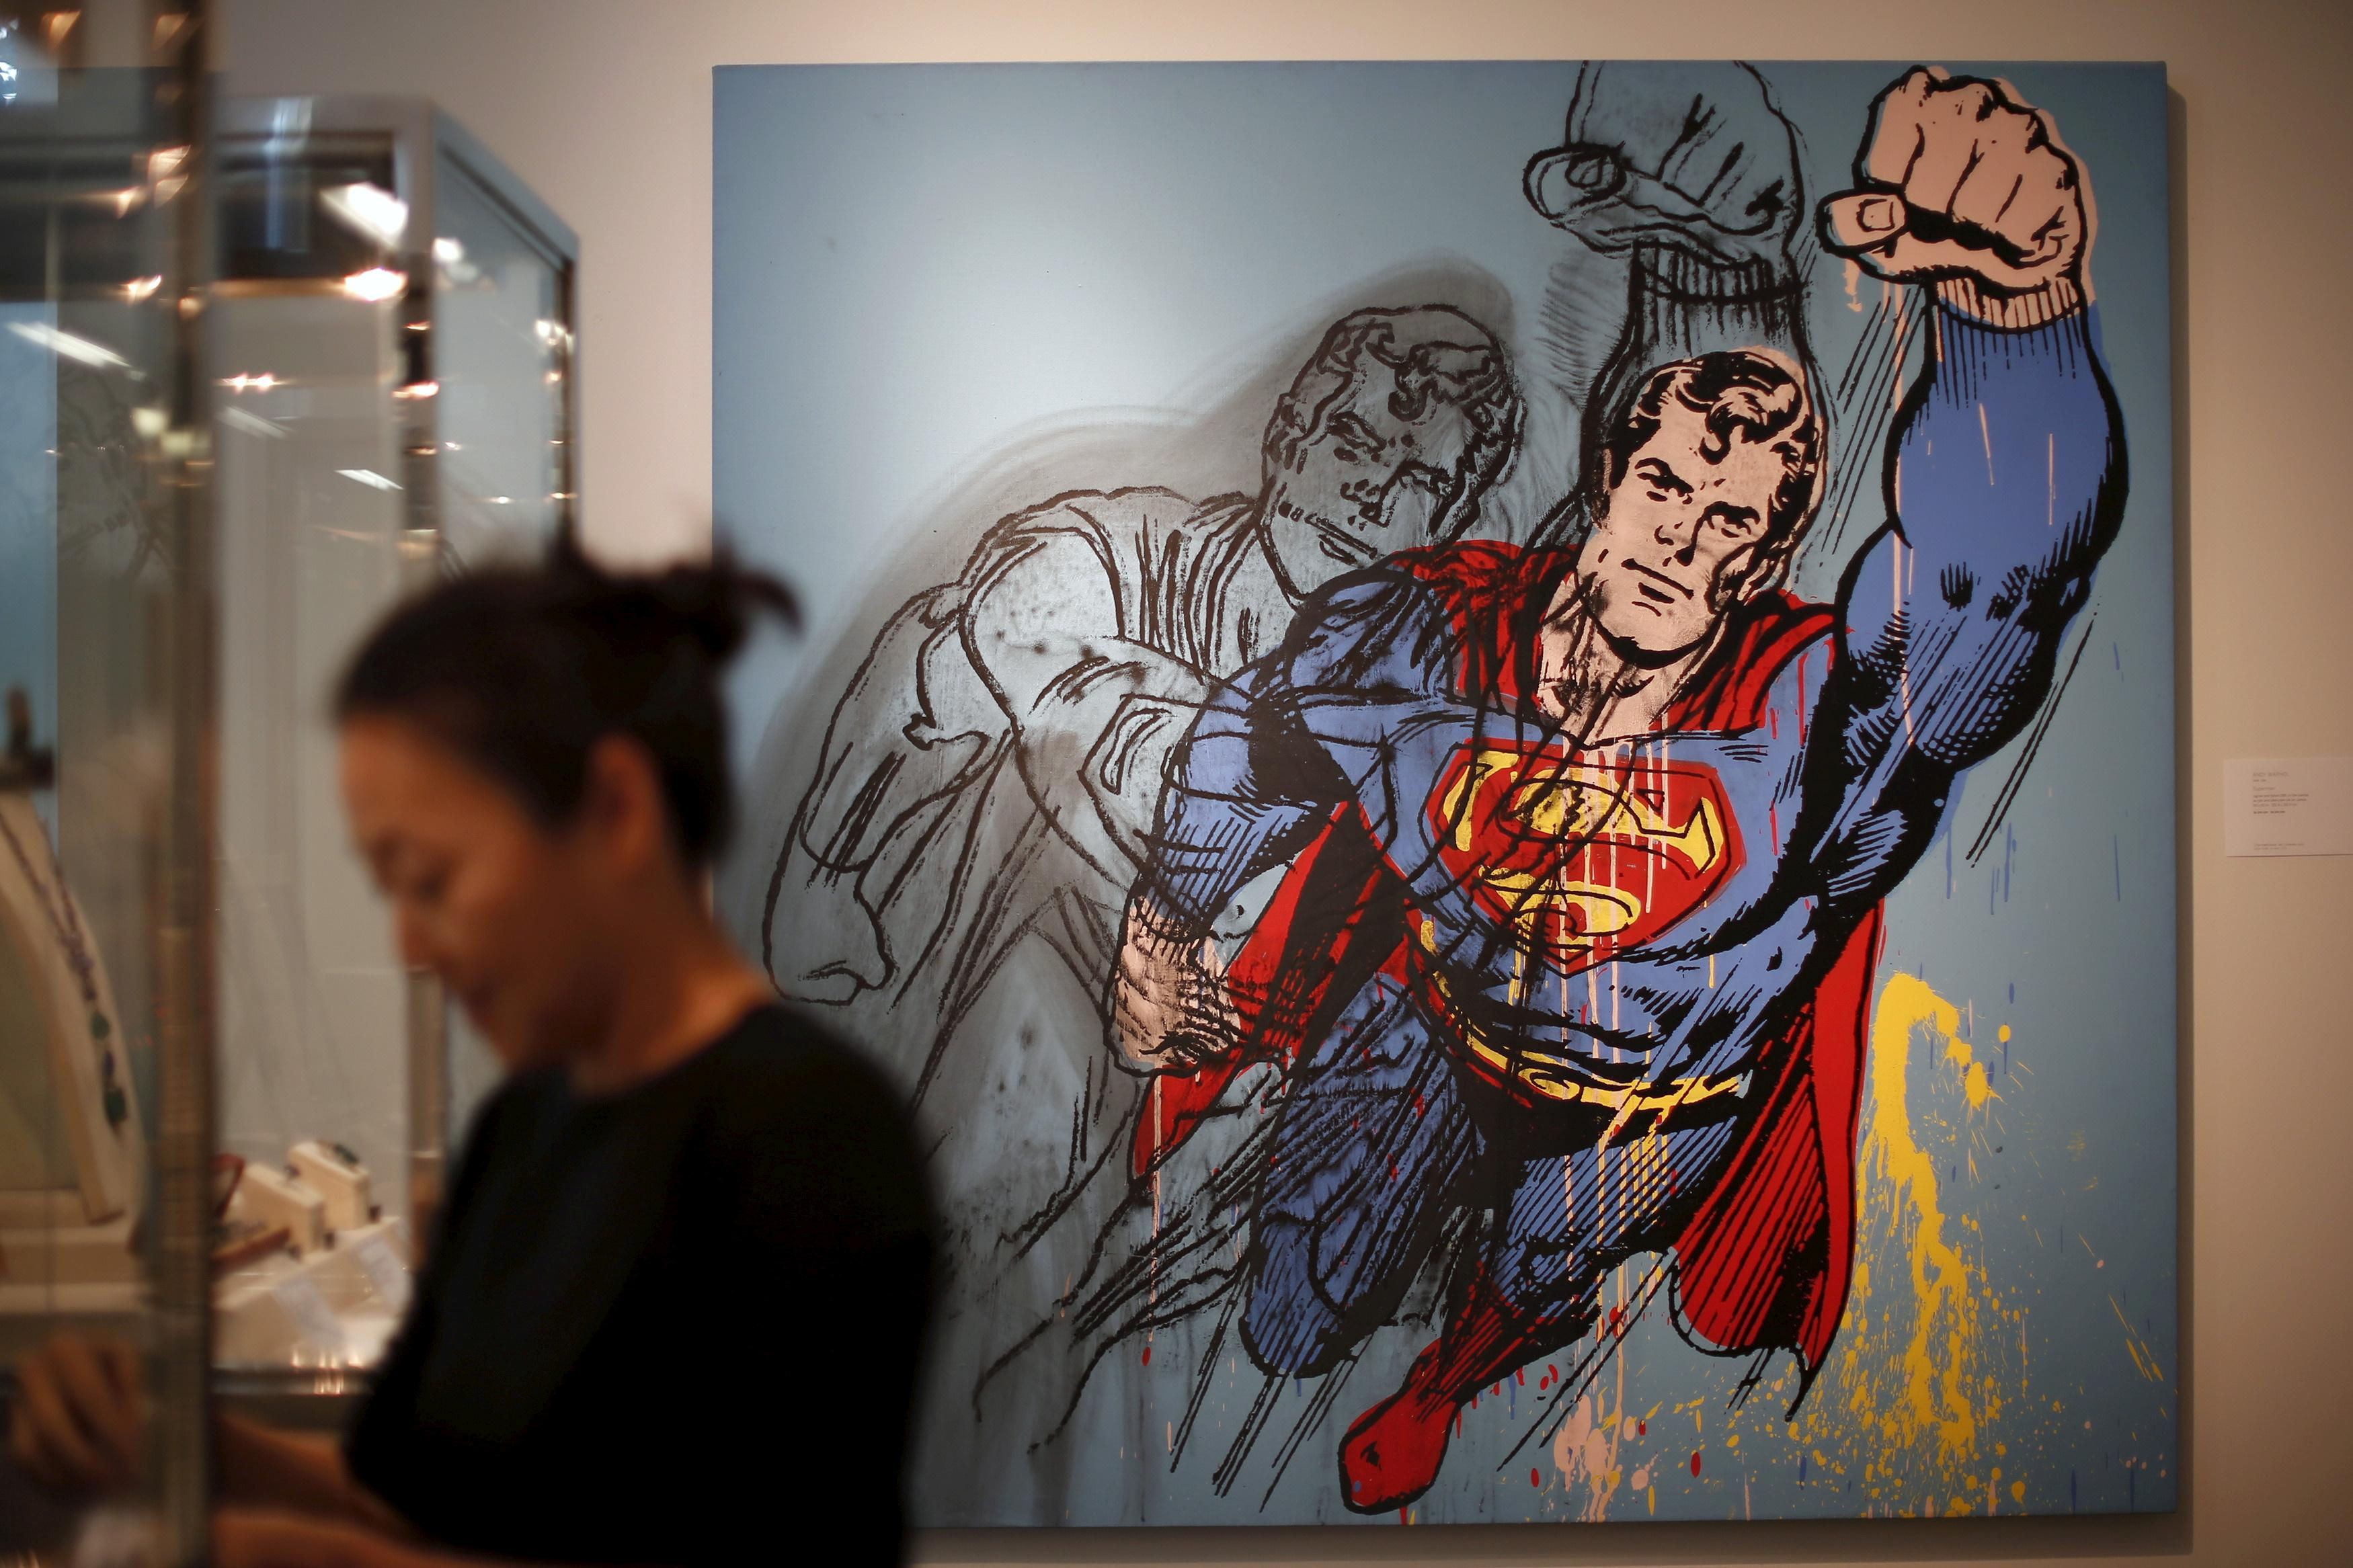 Sotheby's snapped up by French tycoon Drahi for $3.7 billion